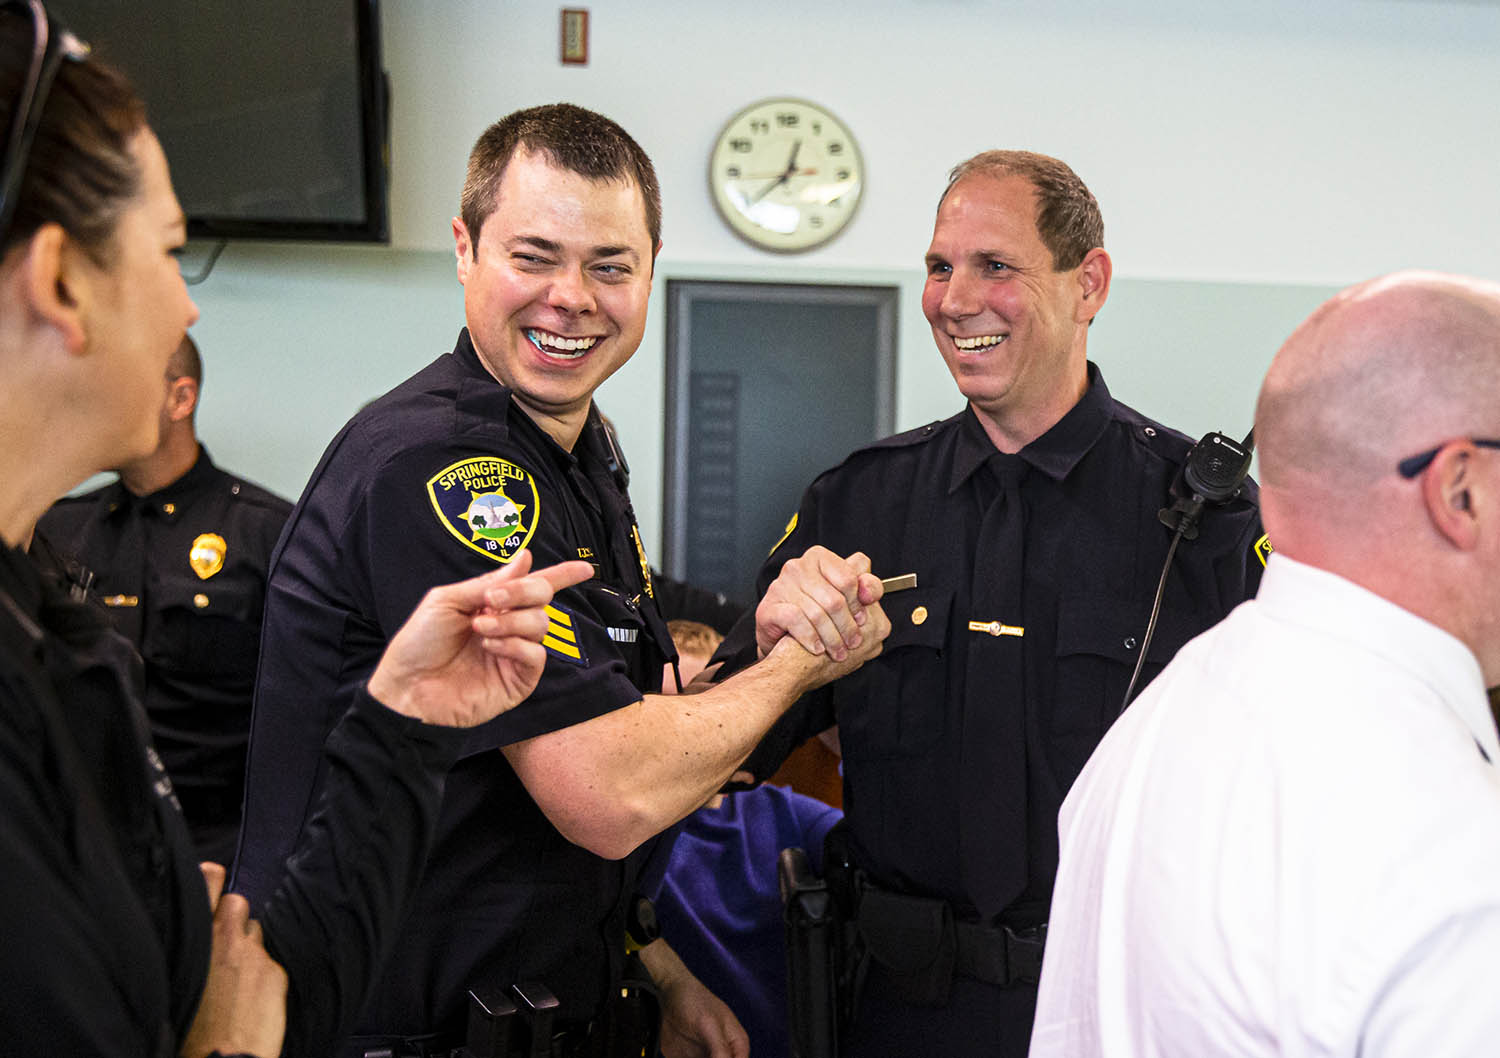 Springfield Police Sergeant Andy Zander, right, is congratulated after his promotion to sergeant during a swearing-in and promotion ceremony for Springfield Police Officers in the City Council Chambers, Monday, May 20, 2019, in Springfield, Ill. [Justin L. Fowler/The State Journal-Register]